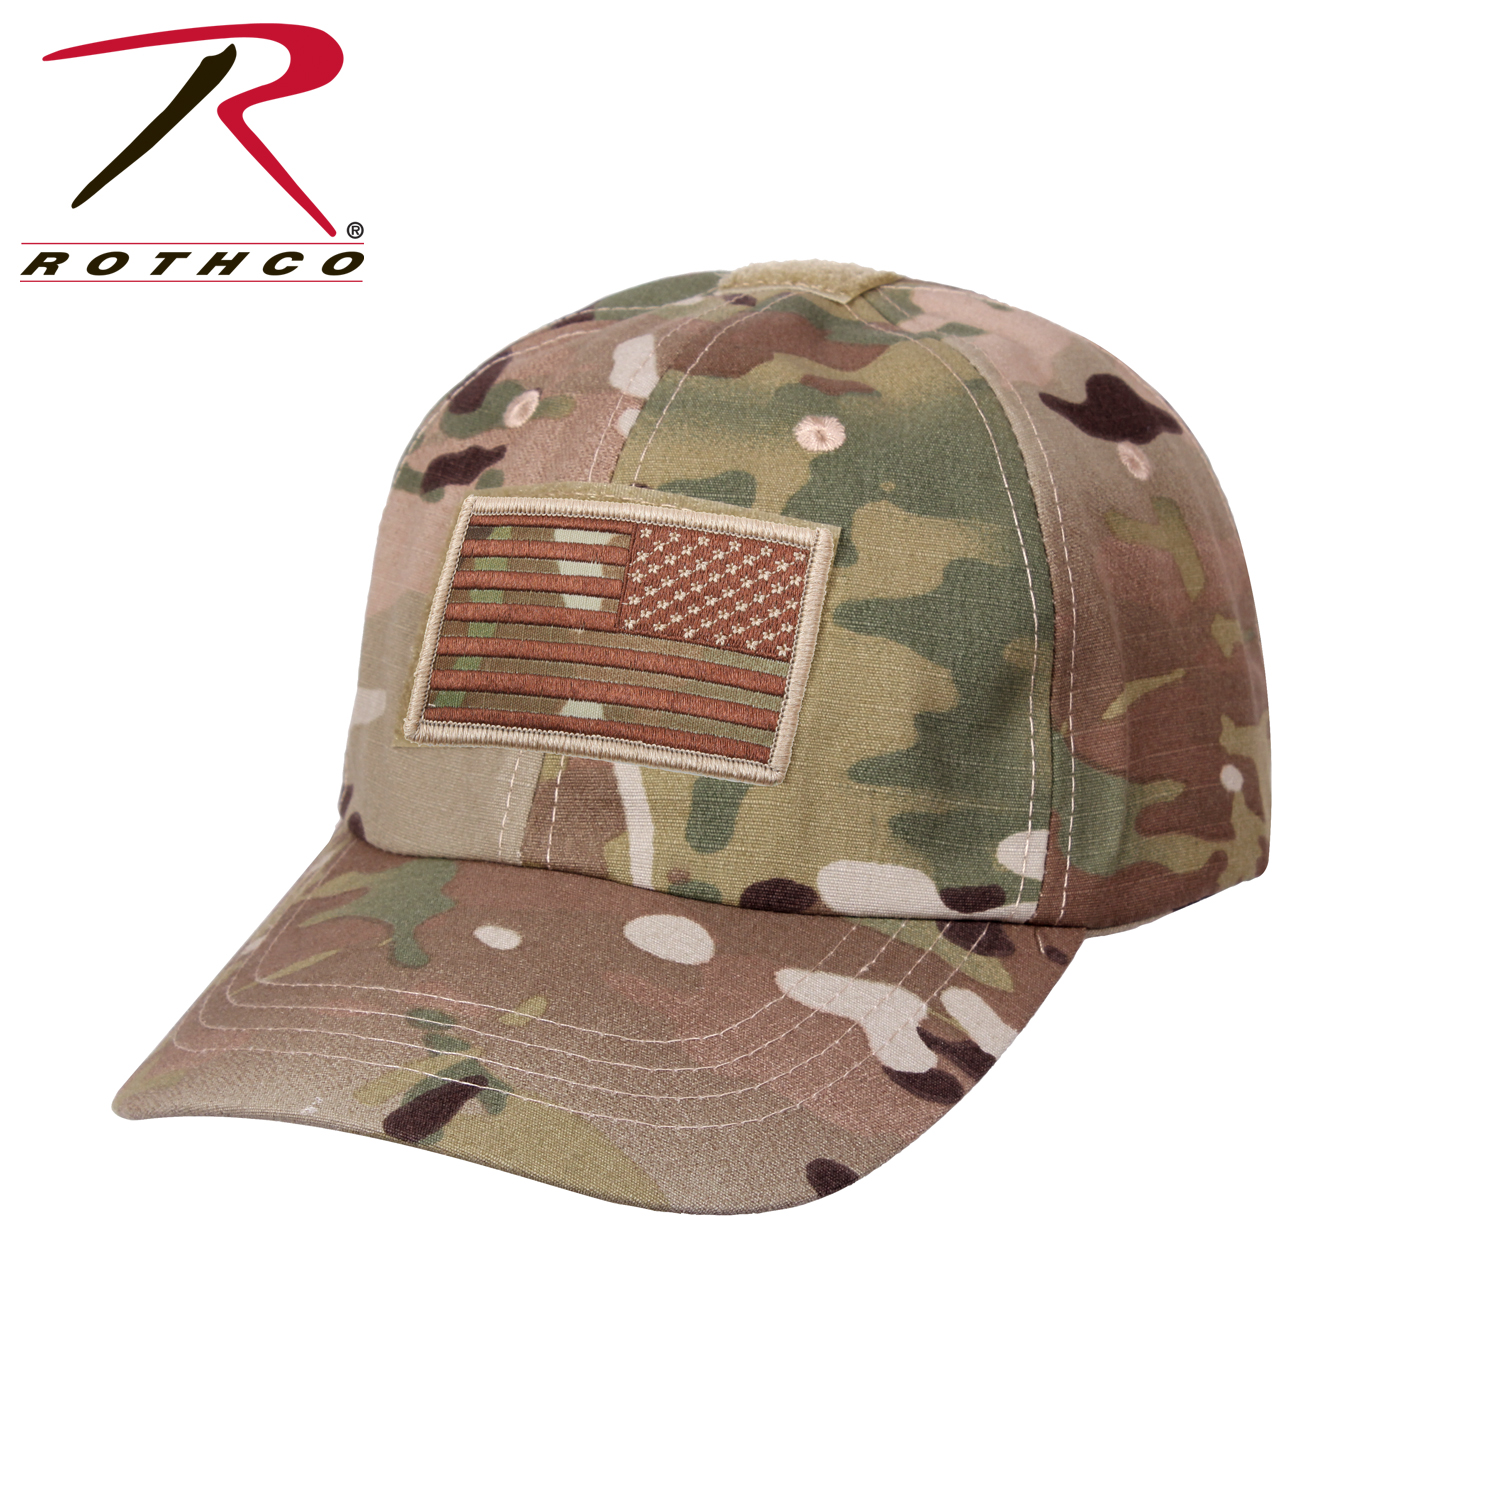 Tactical Operator Cap with Velcro Front - Kind of Outdoorsy 711f827b9ea